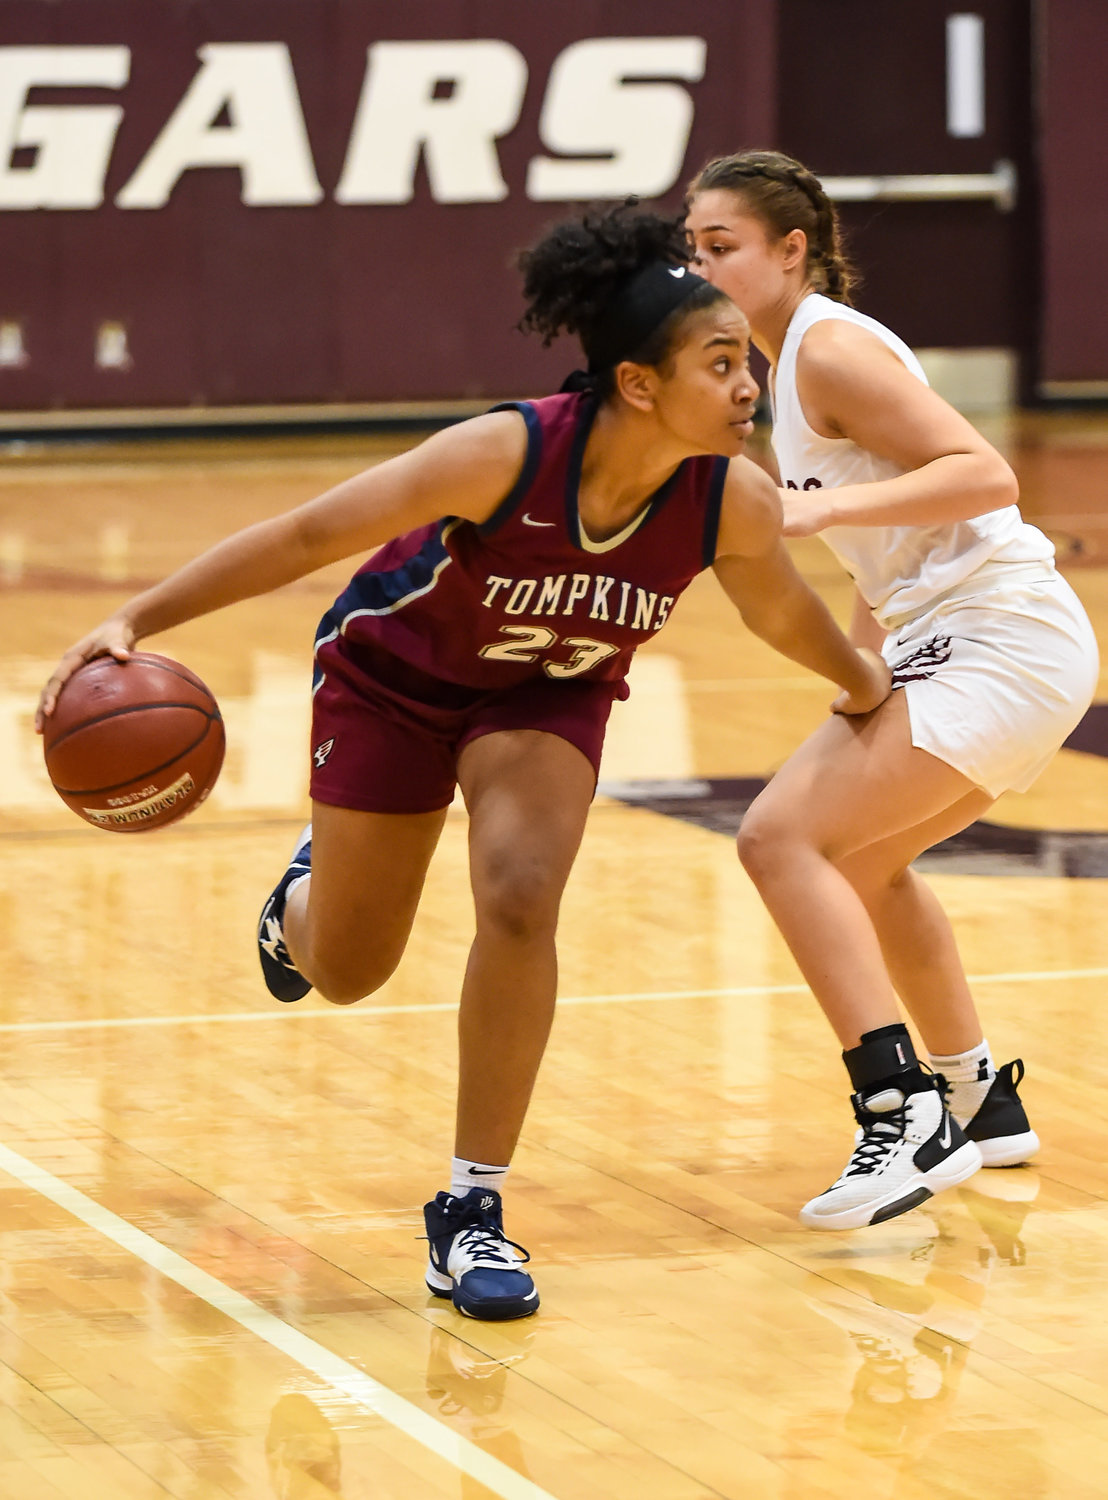 Katy Tx. Jan. 3, 2020: Tompkins' Loghan Johnson (23) brings the ball up court during district basketball game between Tompkins Falcons and Cinco Ranch Cougars at CRHS.  (Photo by Mark Goodman / Katy Times)